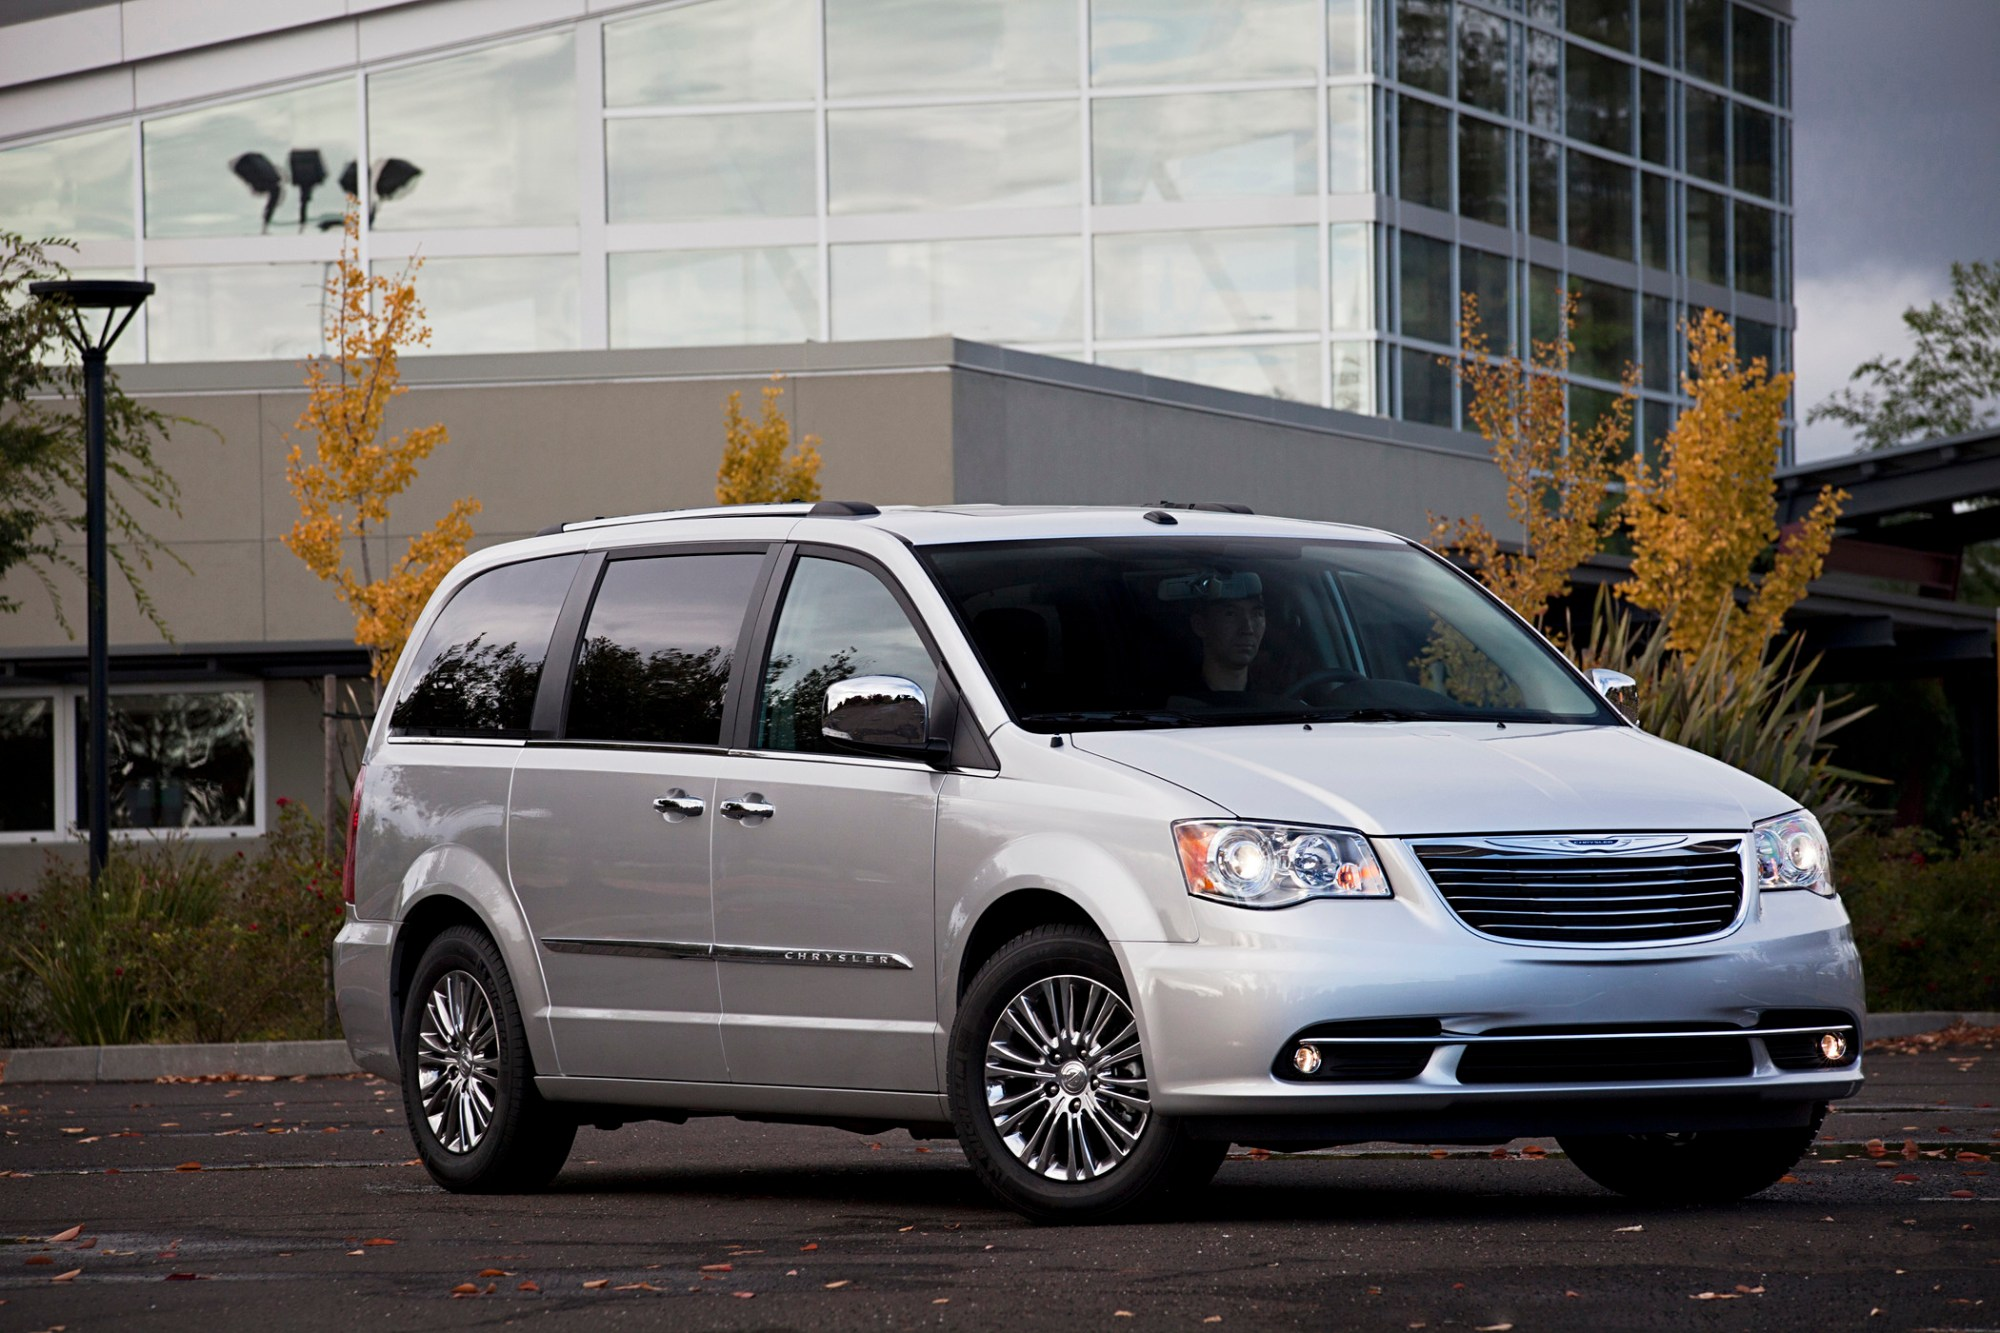 hight resolution of 2011 chrysler town and country on 2000 chrysler van wiring diagram